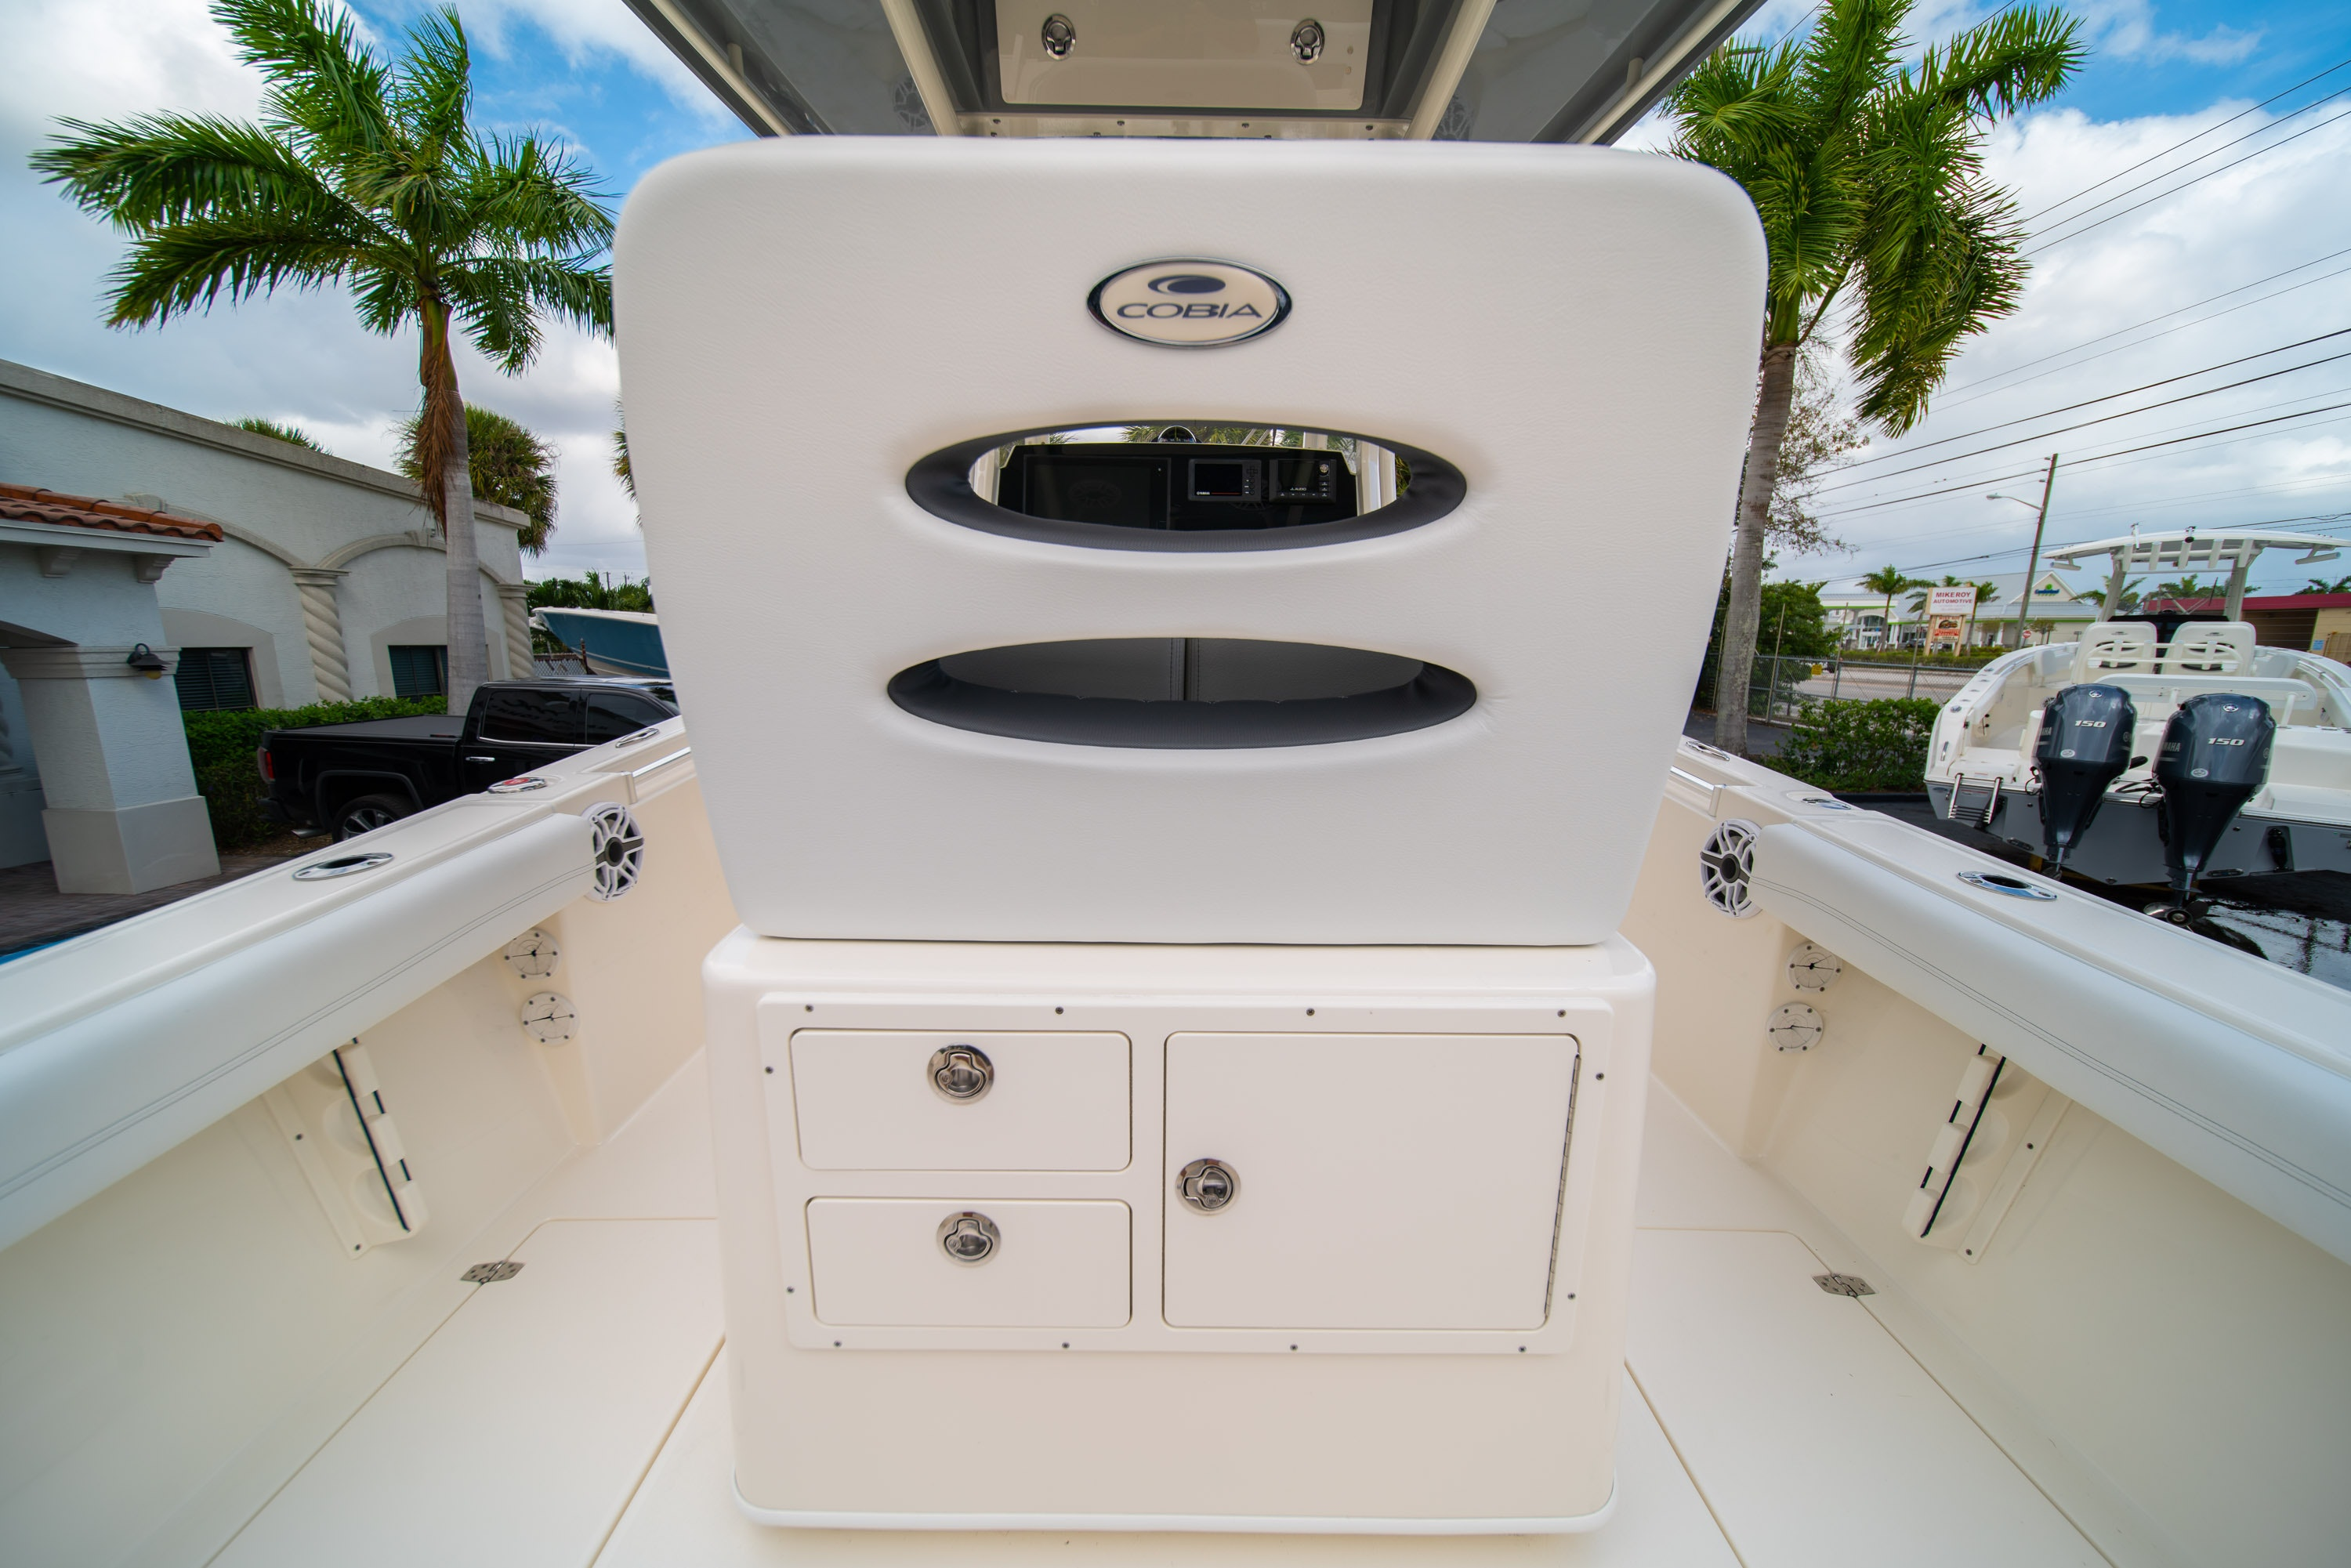 Thumbnail 18 for New 2020 Cobia 240 CC Center Console boat for sale in West Palm Beach, FL